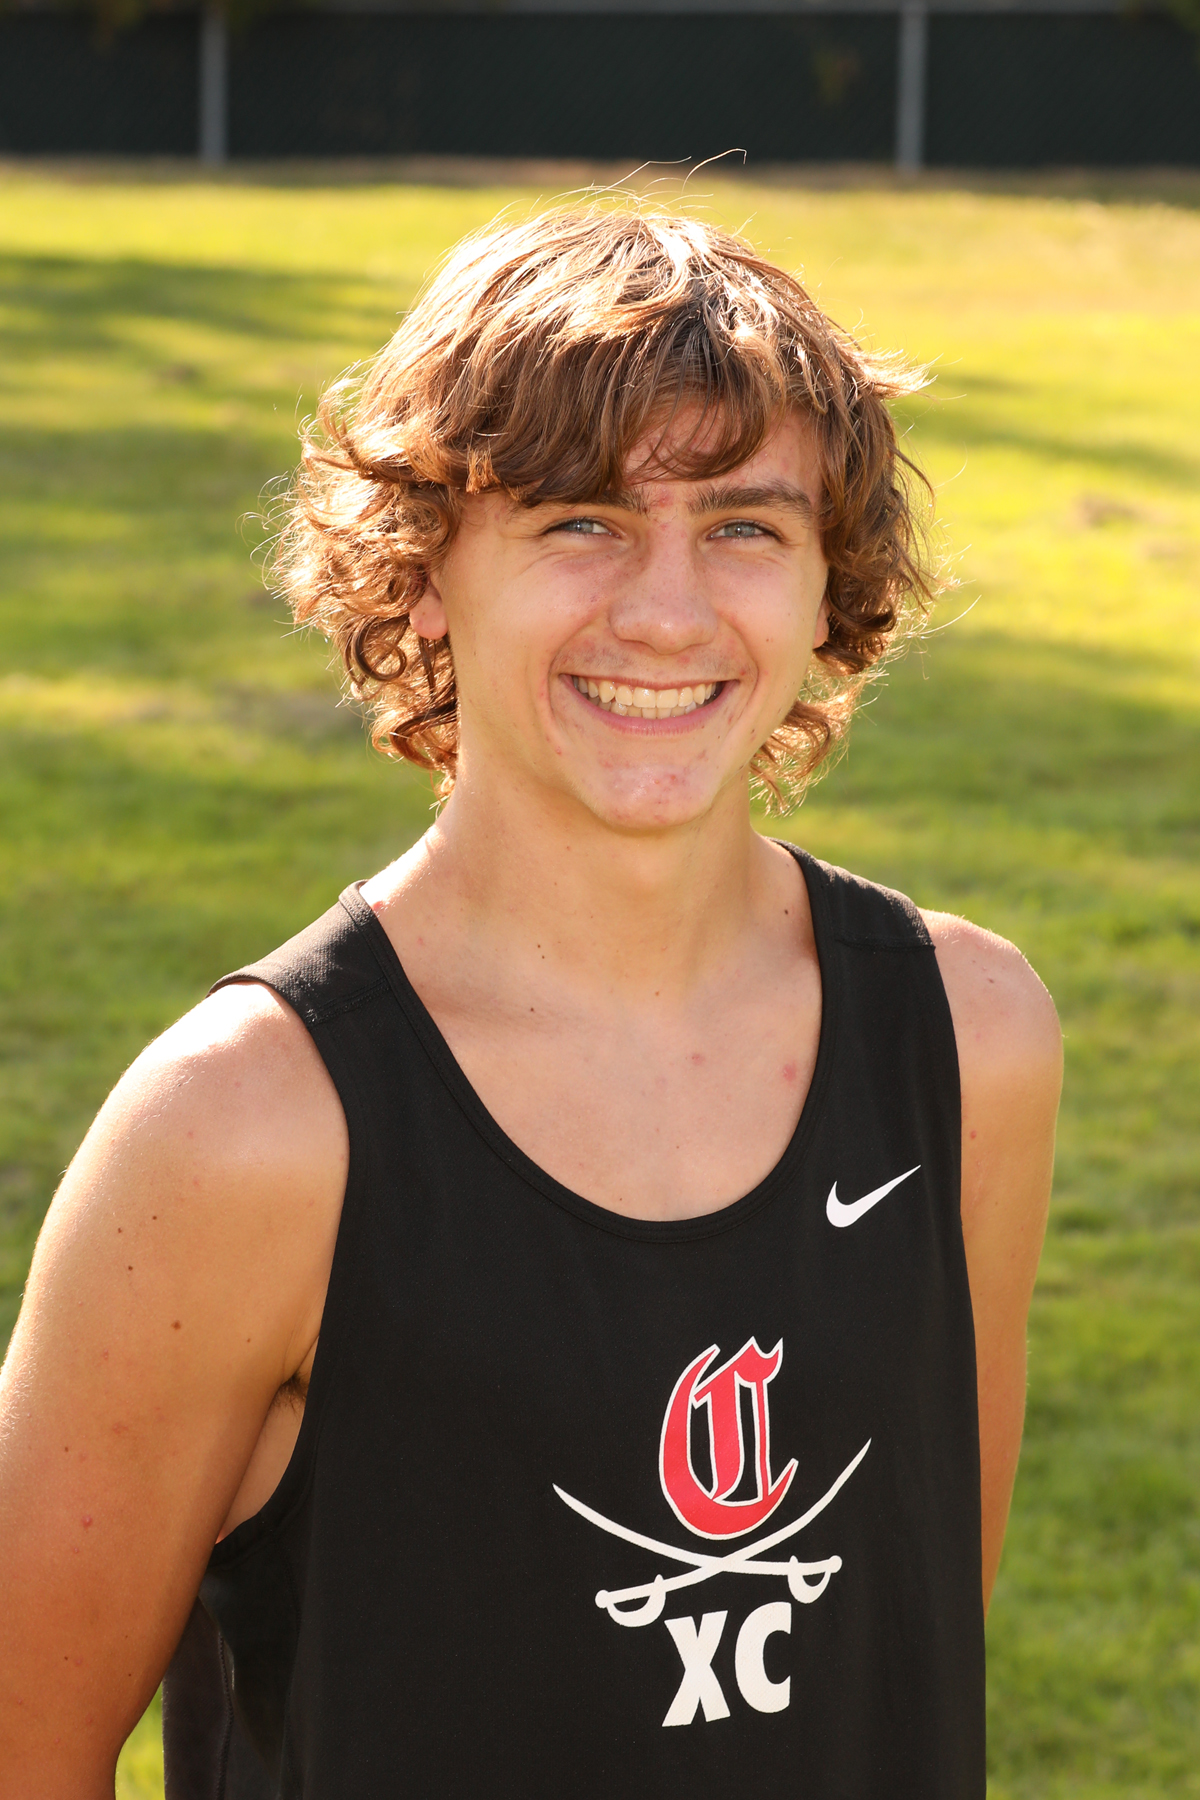 Sun Glow Heating and Cooling Athlete of the Week for October 7th-13th